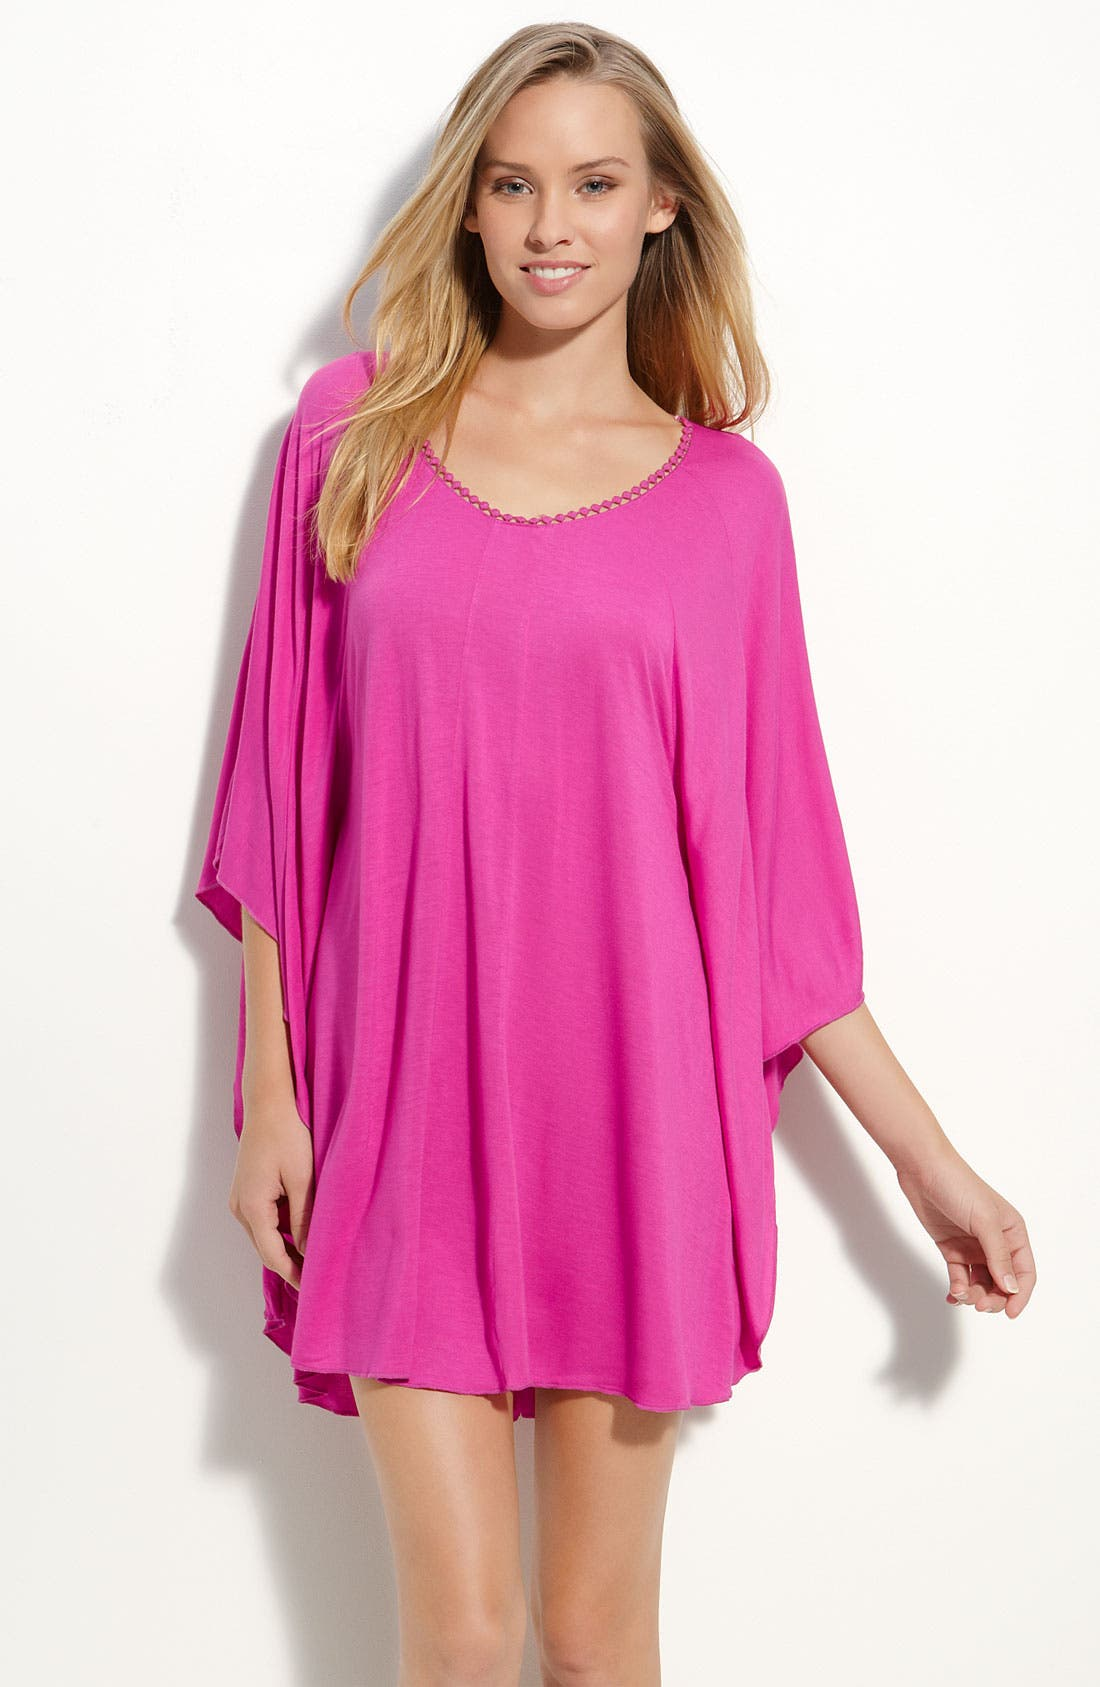 Main Image - La Blanca 'Play Date' Cover Up Dress